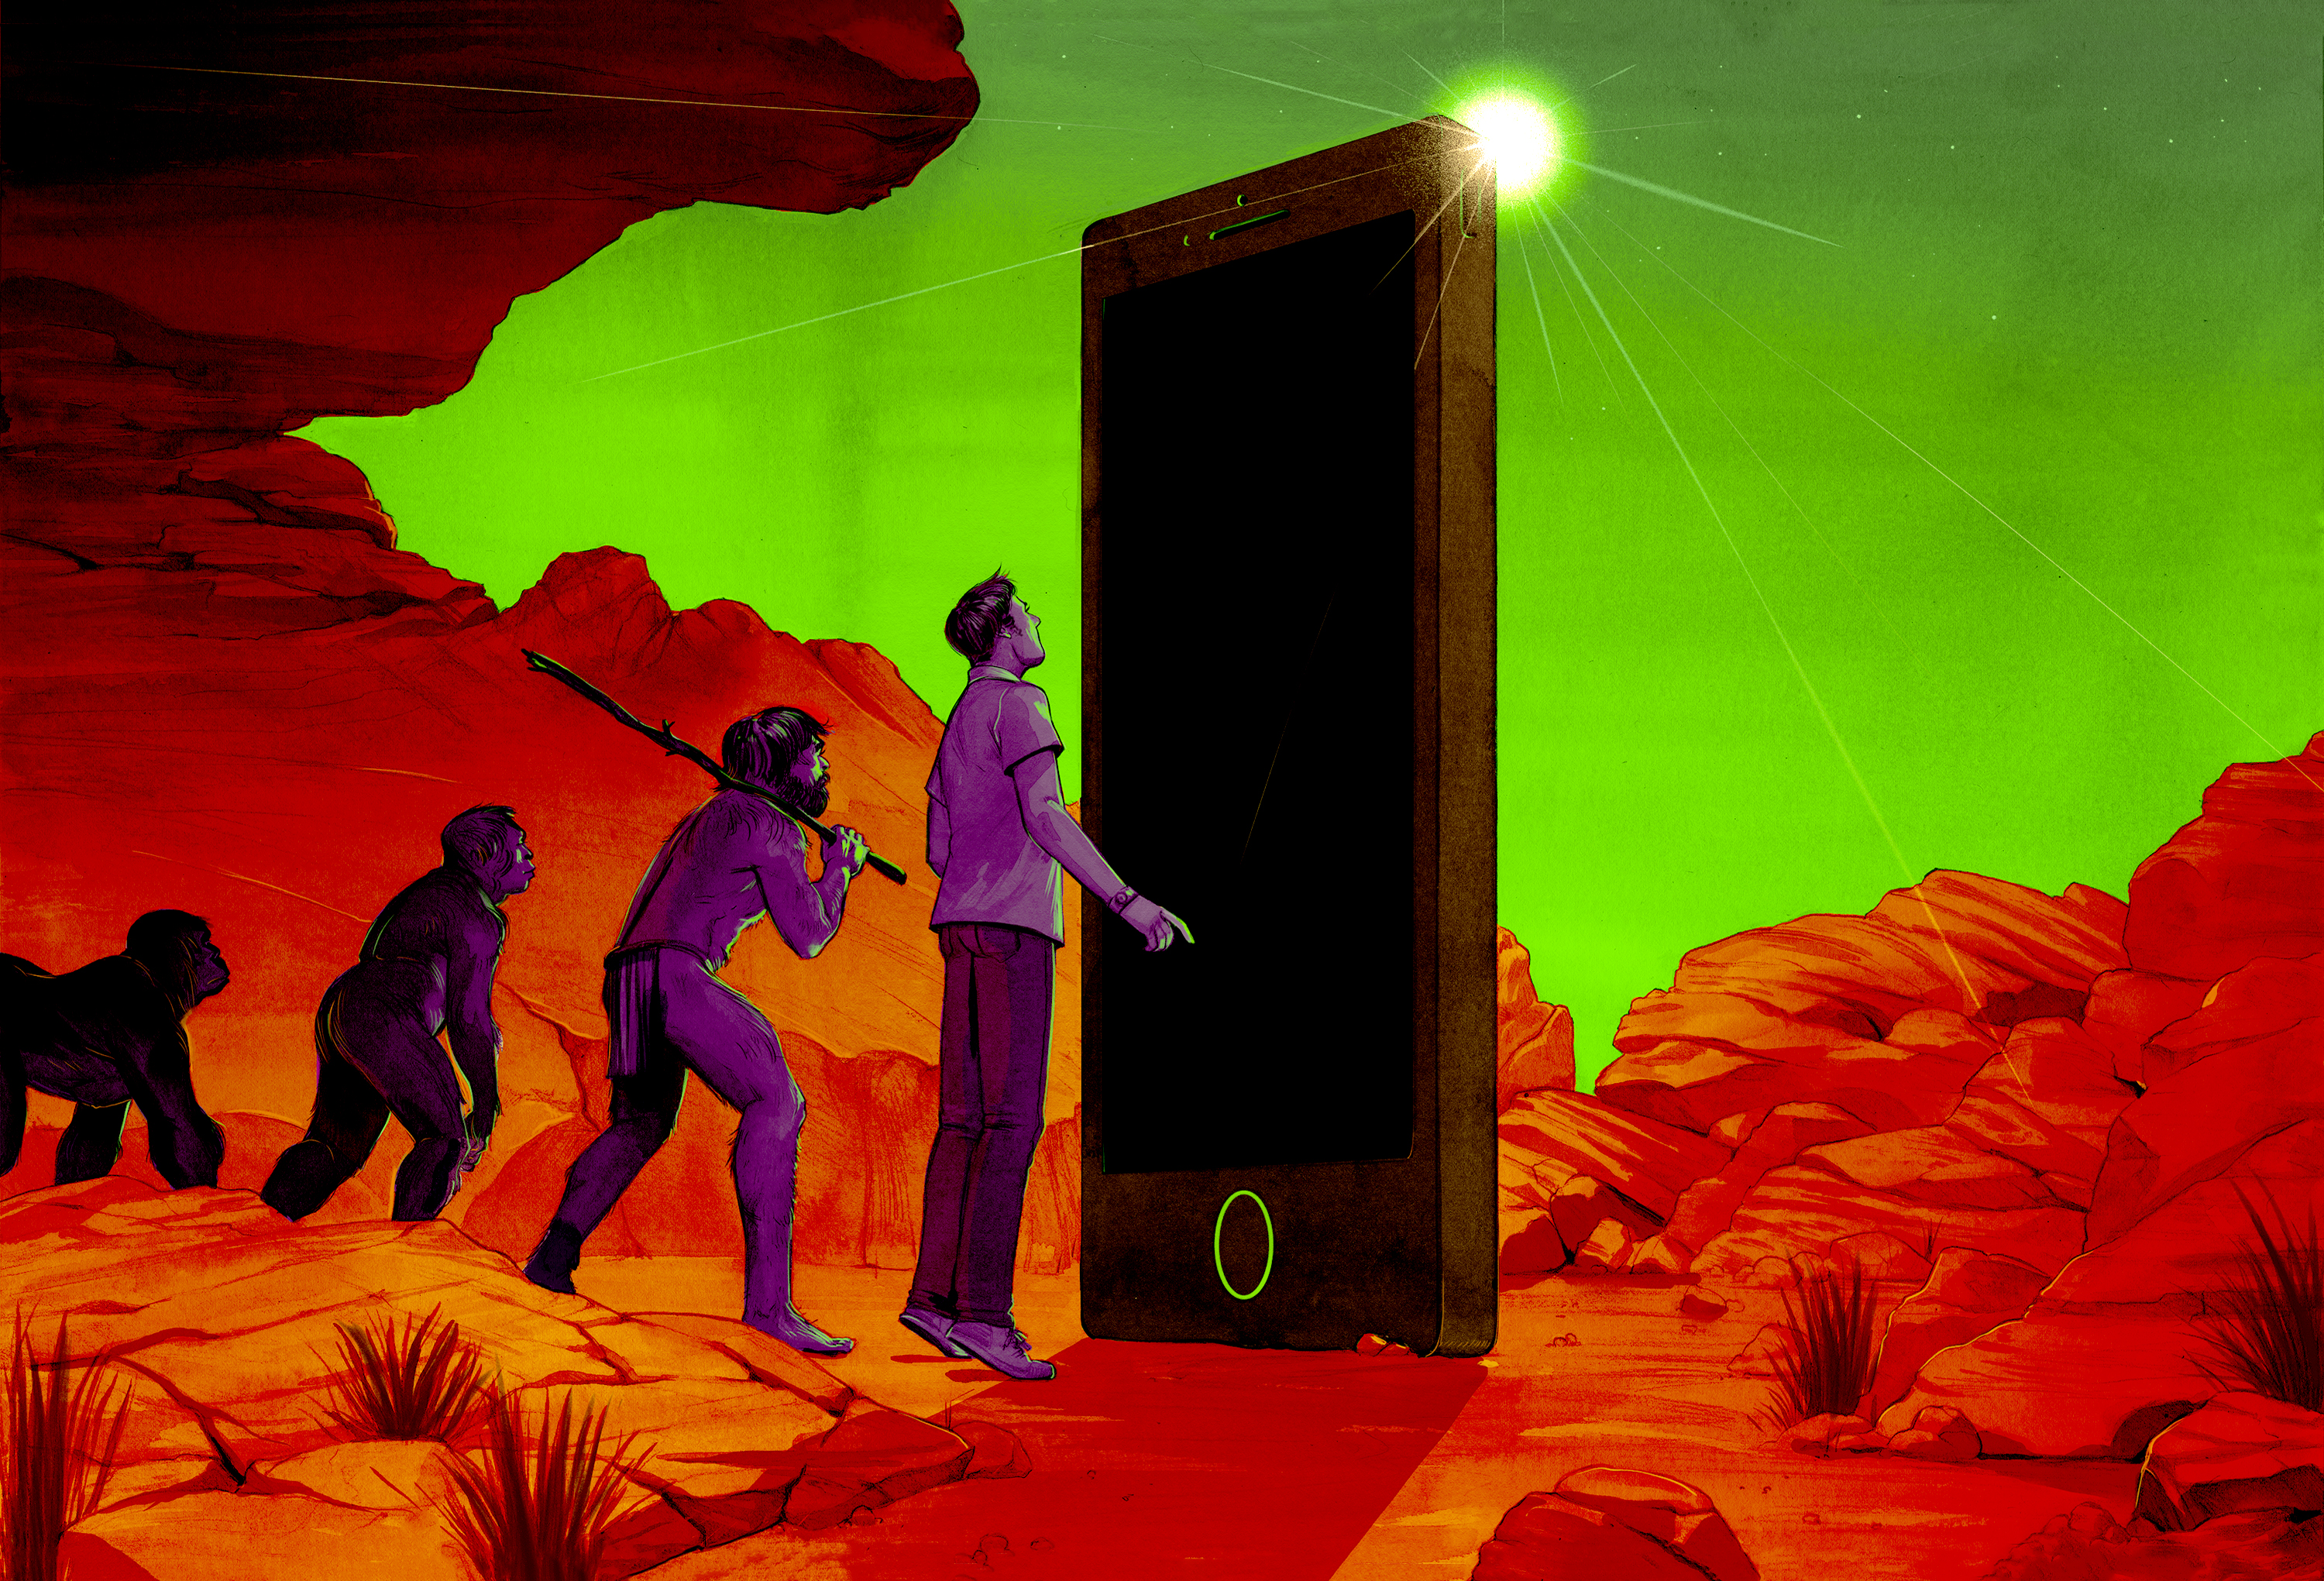 An illustration showing an ape, then a caveman, and then a modern human who is staring up at a gigantic phone like an obelisk.